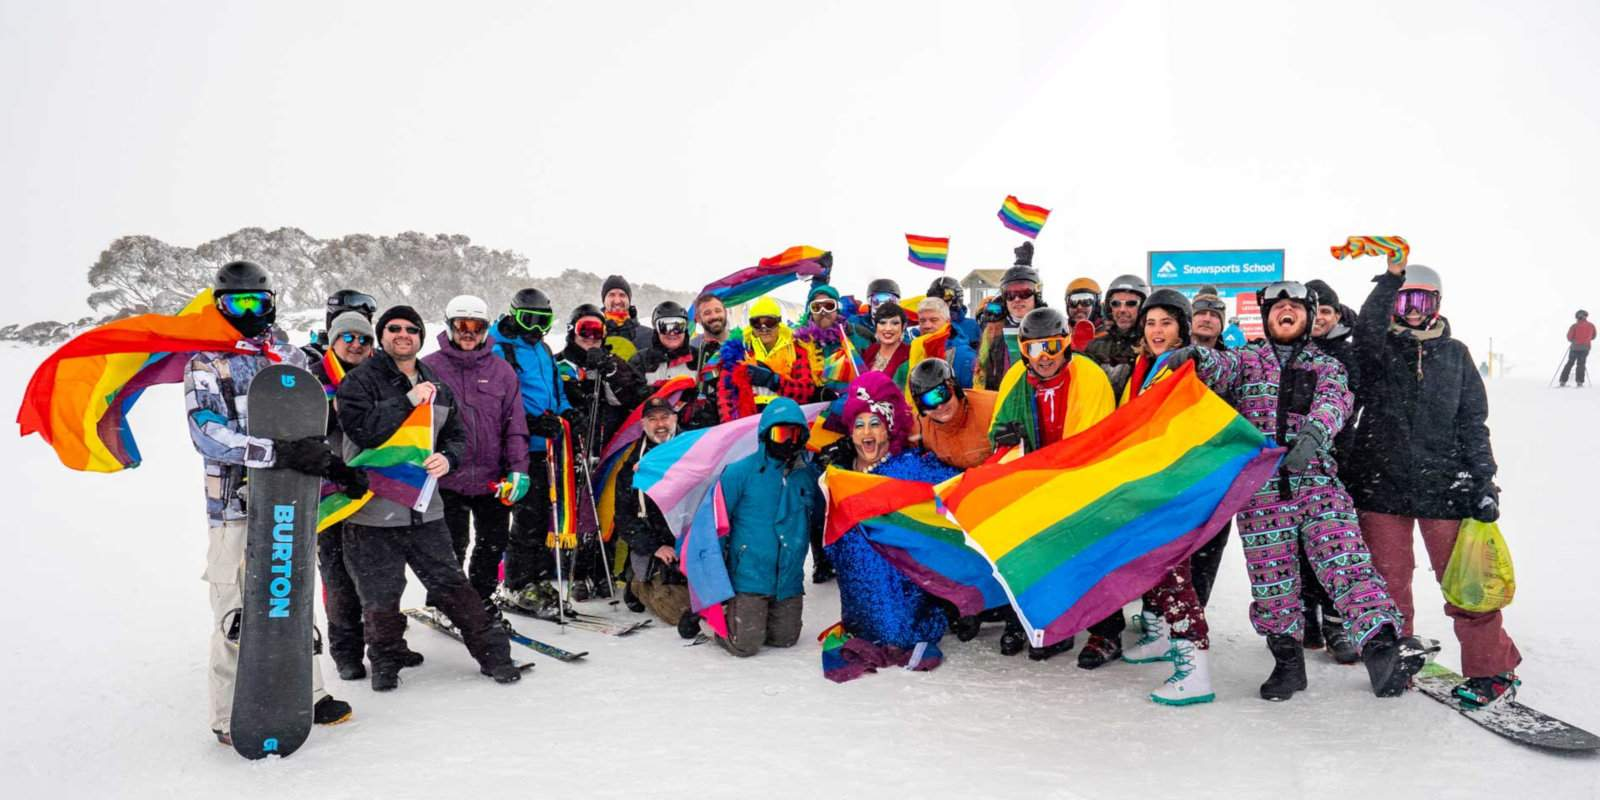 Australia's gay ski week is an awesome mix of snow and partying at Falls Creek in Victoria